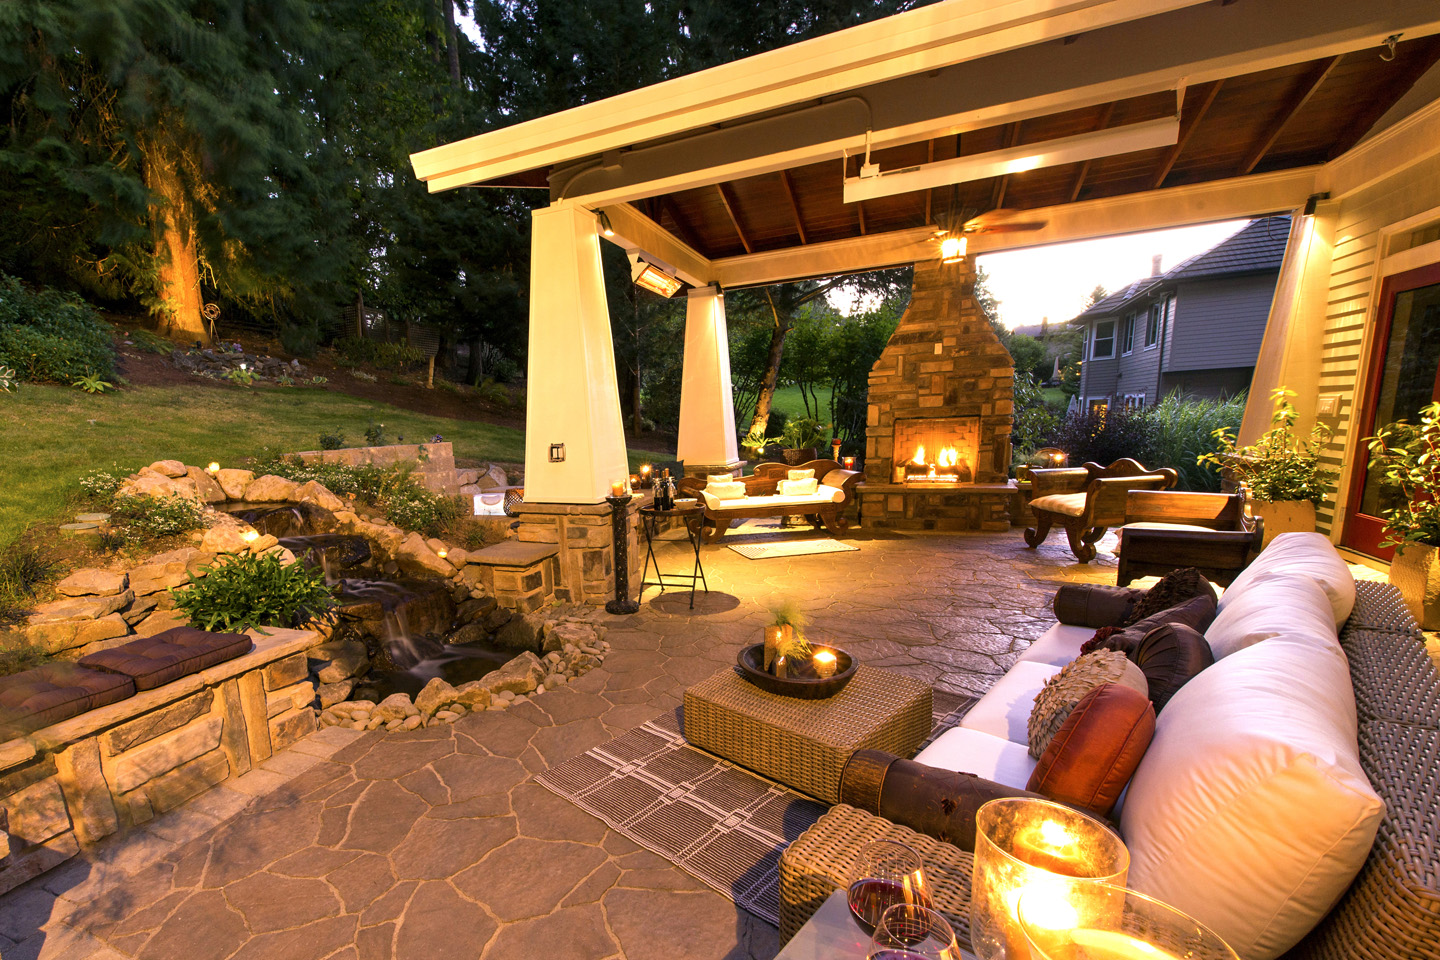 Gazebo, In-ground-Spa, Water Feature